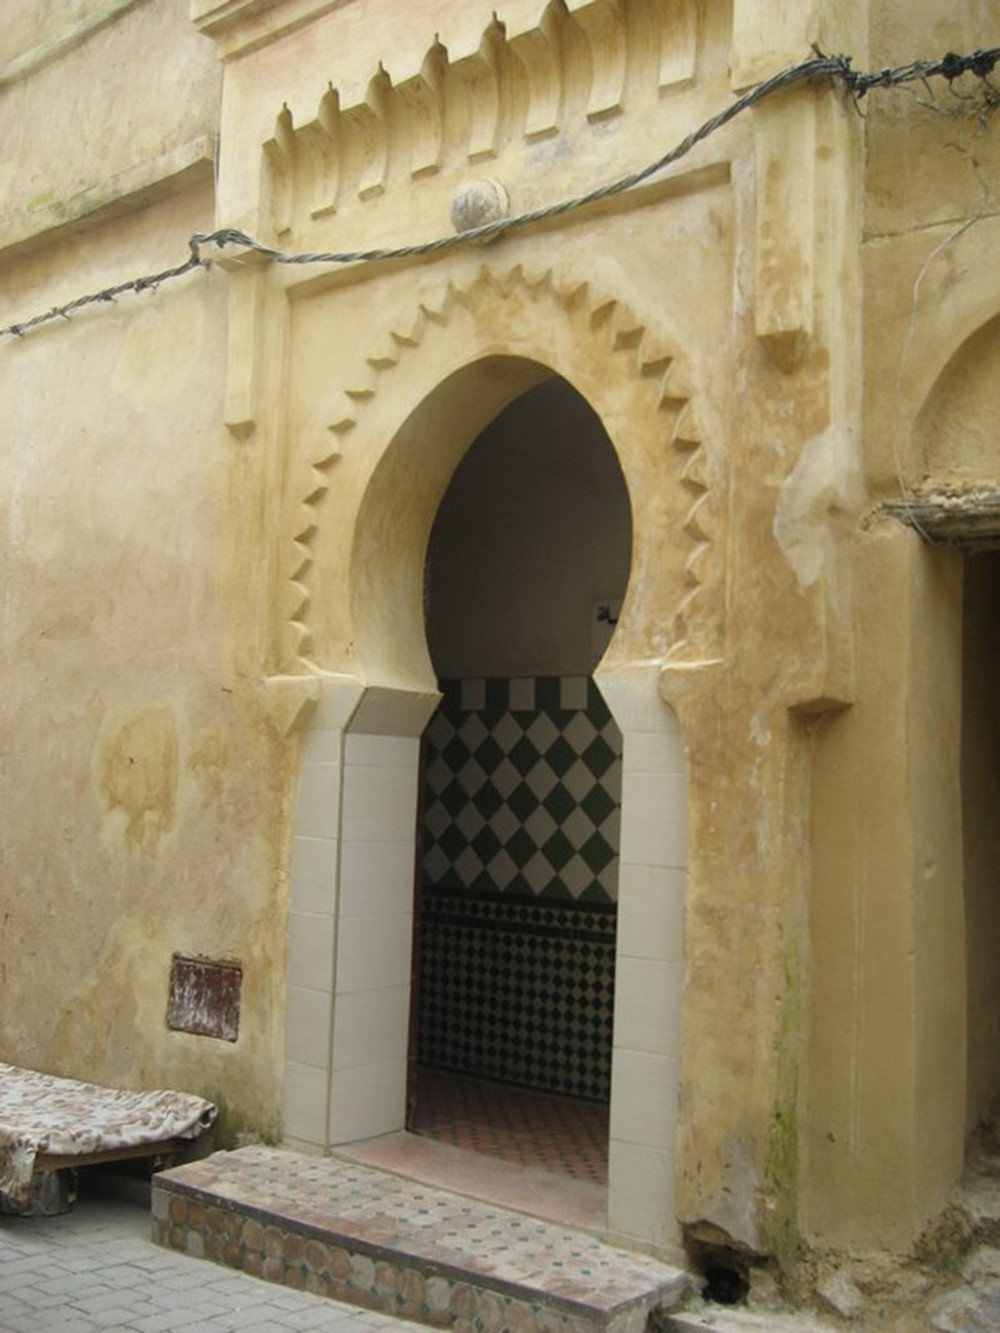 The tiles usually indicate an entrance